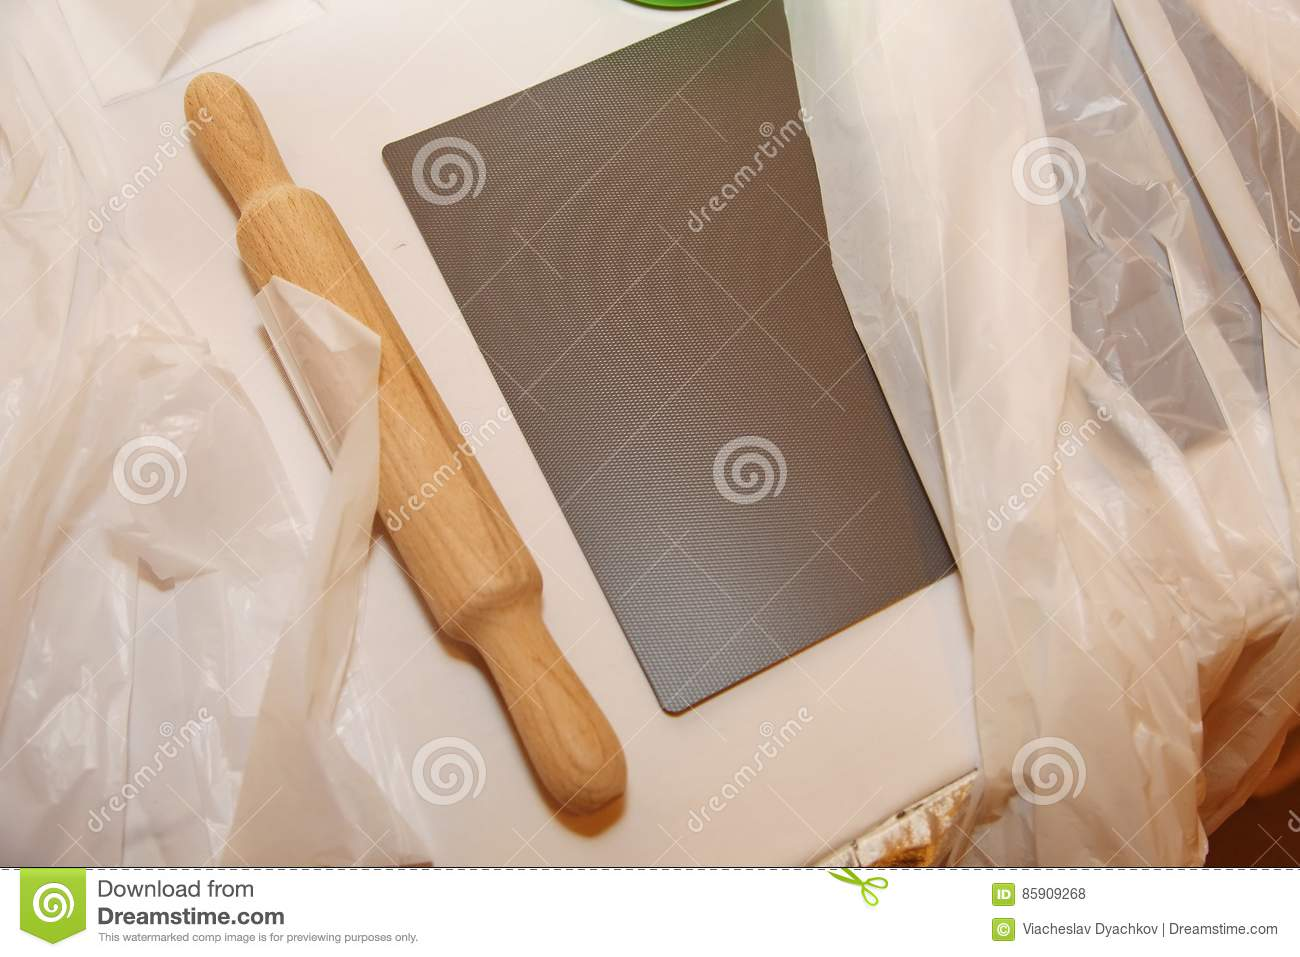 Wooden Rolling Pin For Rolling Dough In The Kitchen Stock Photo